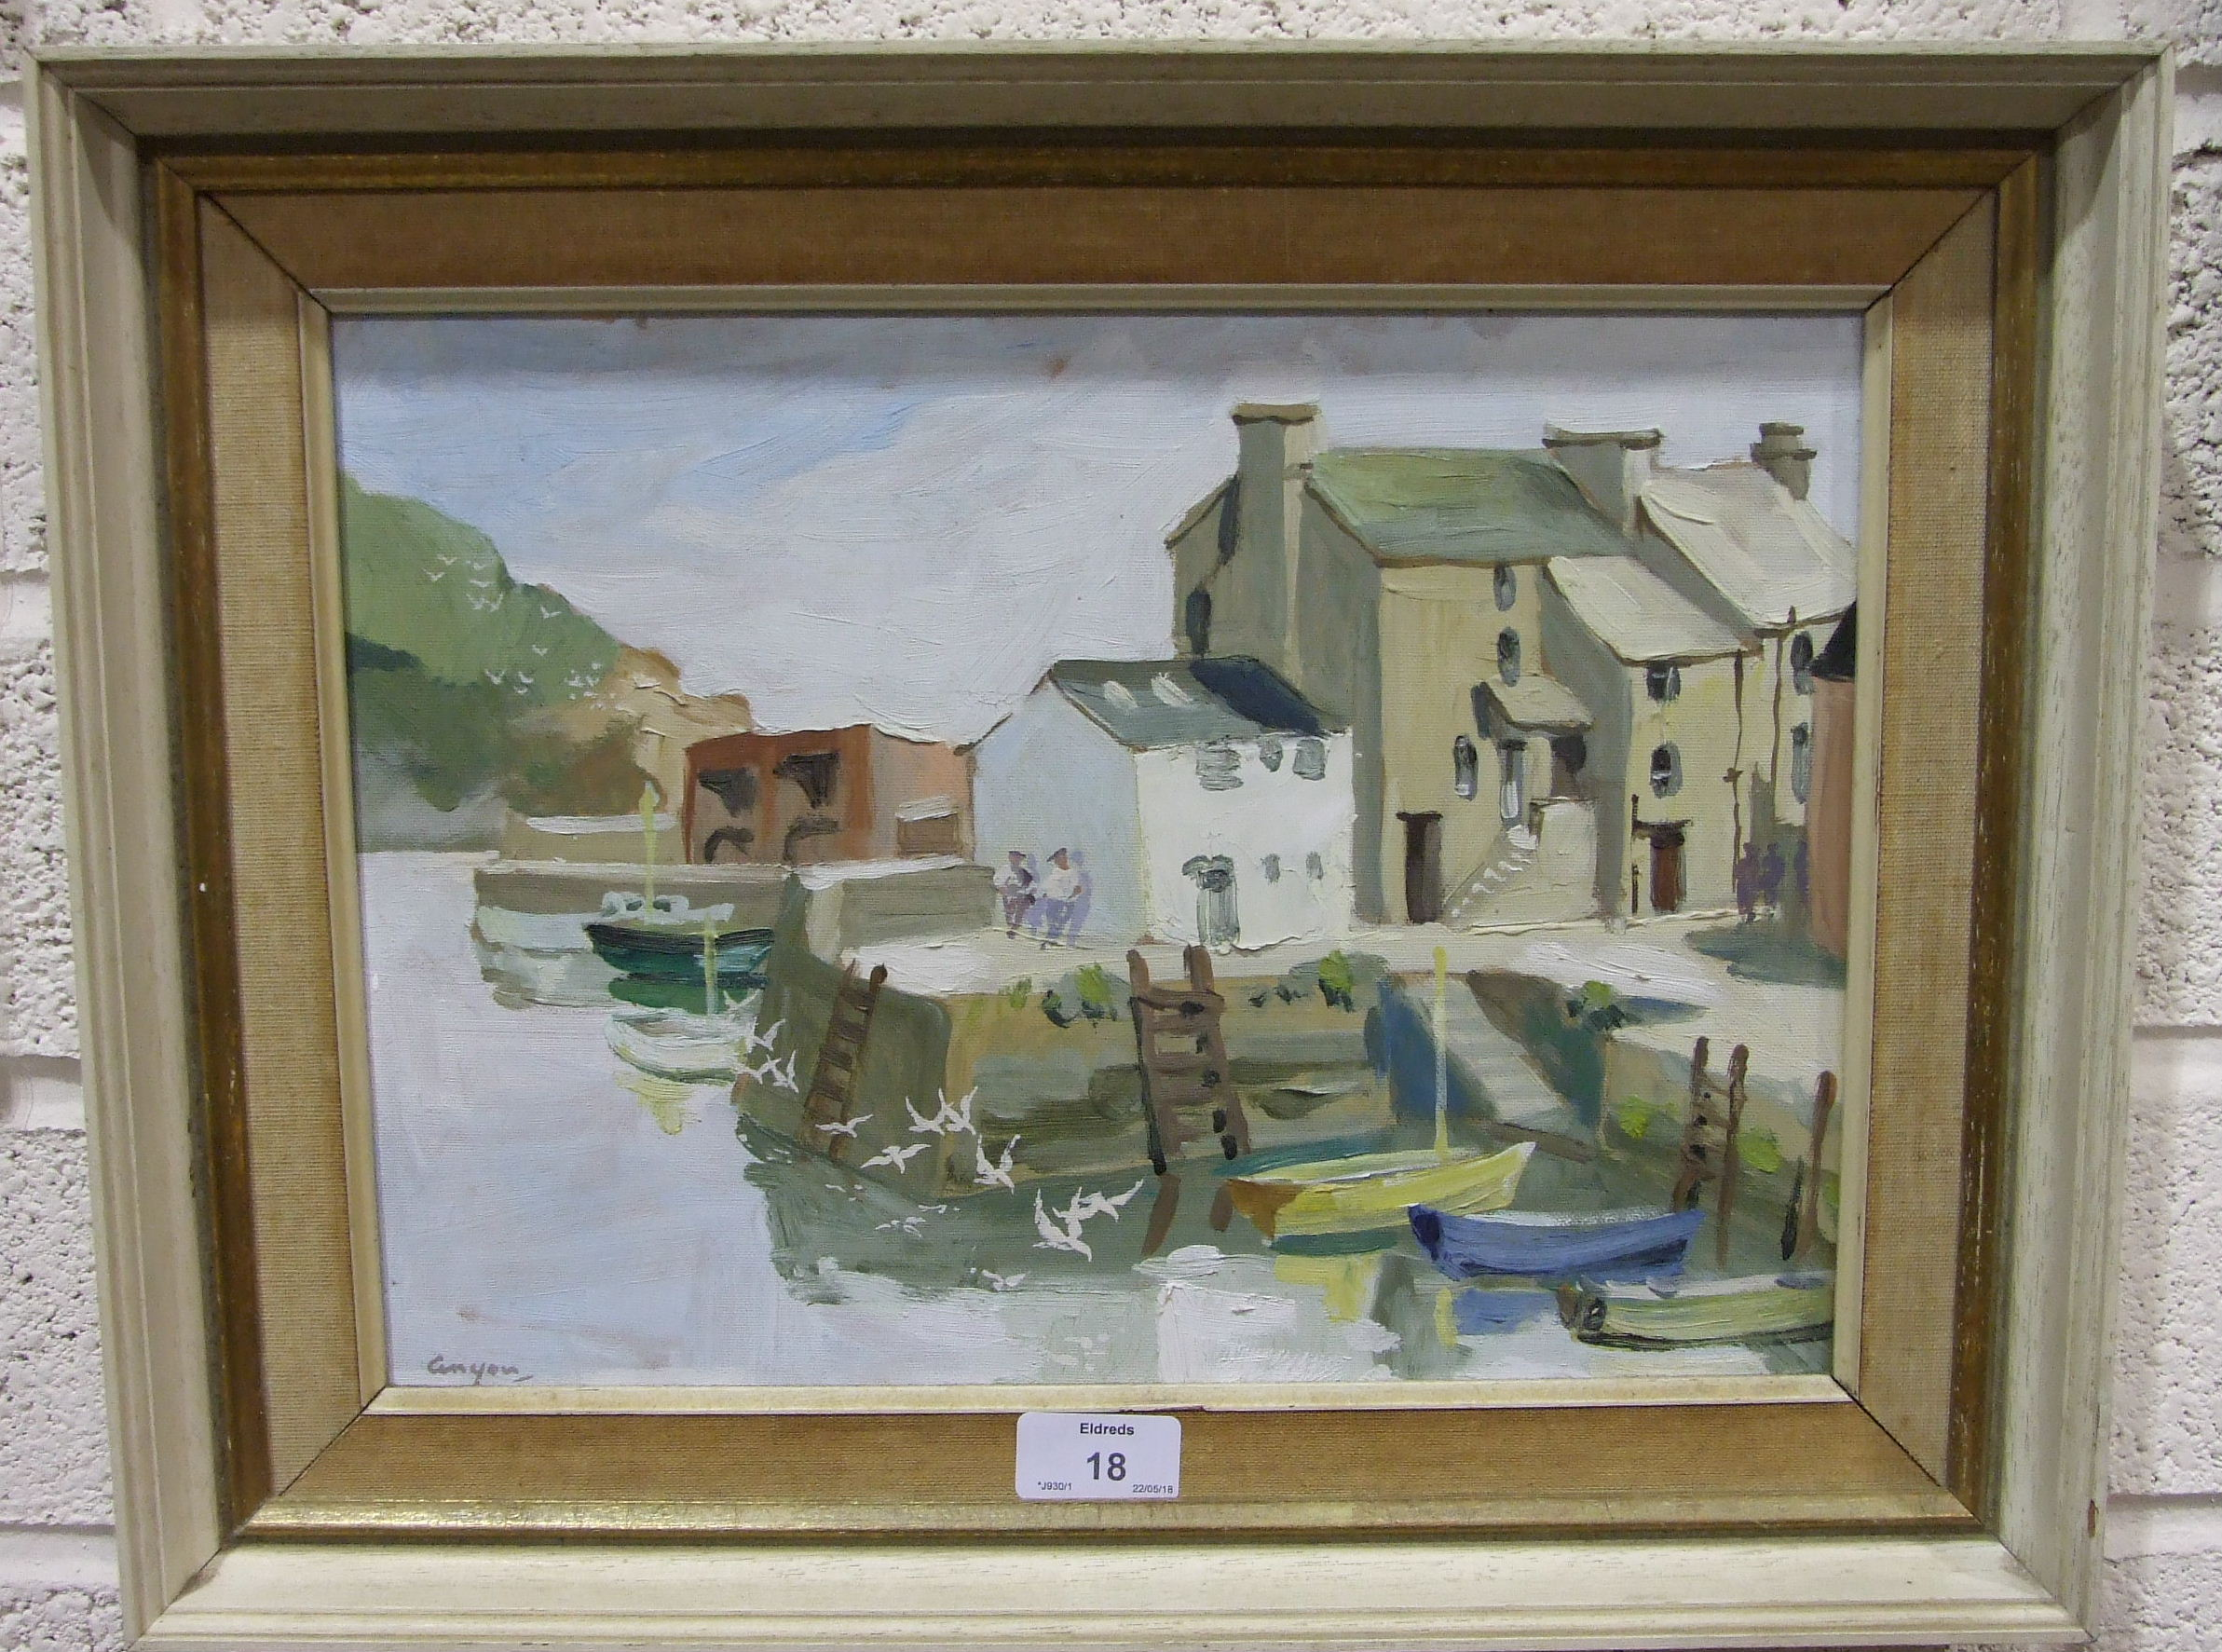 •Anyon Cook POLPERRO Signed watercolour, 18 x 25cm, together with another view of Polperro by the - Image 2 of 3